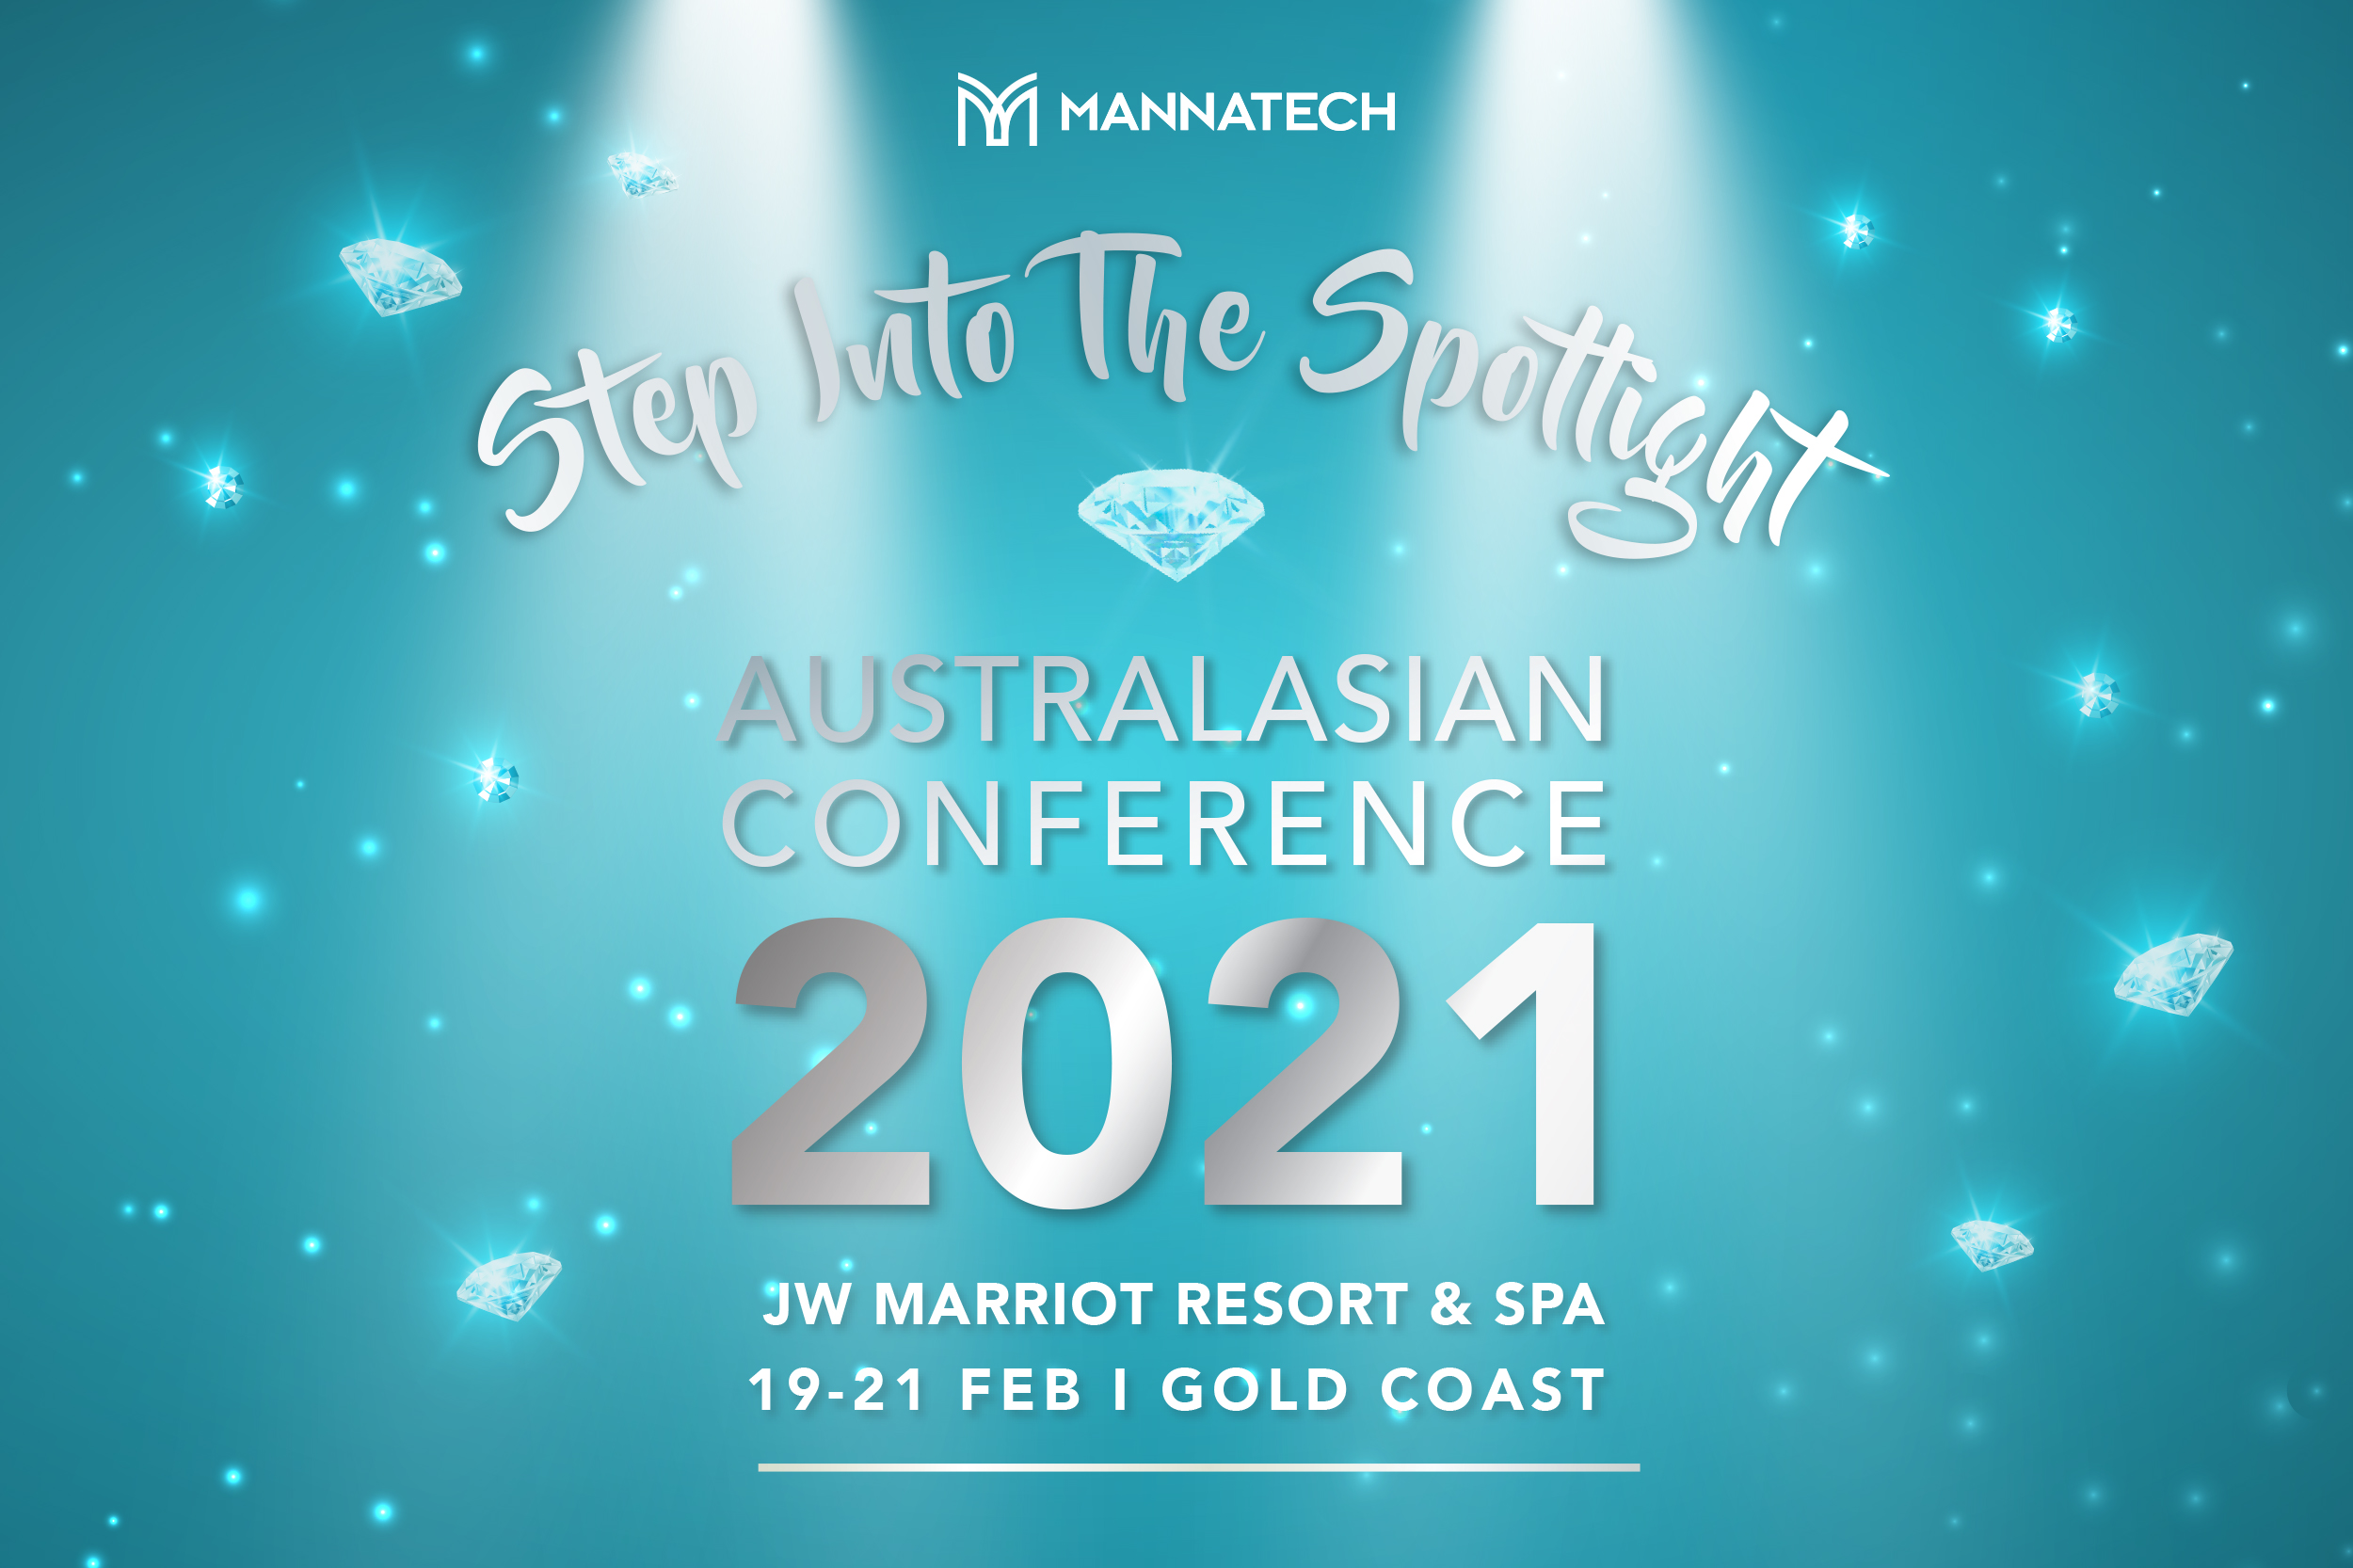 Australasian Conference 2021 – Step Into The Spotlight